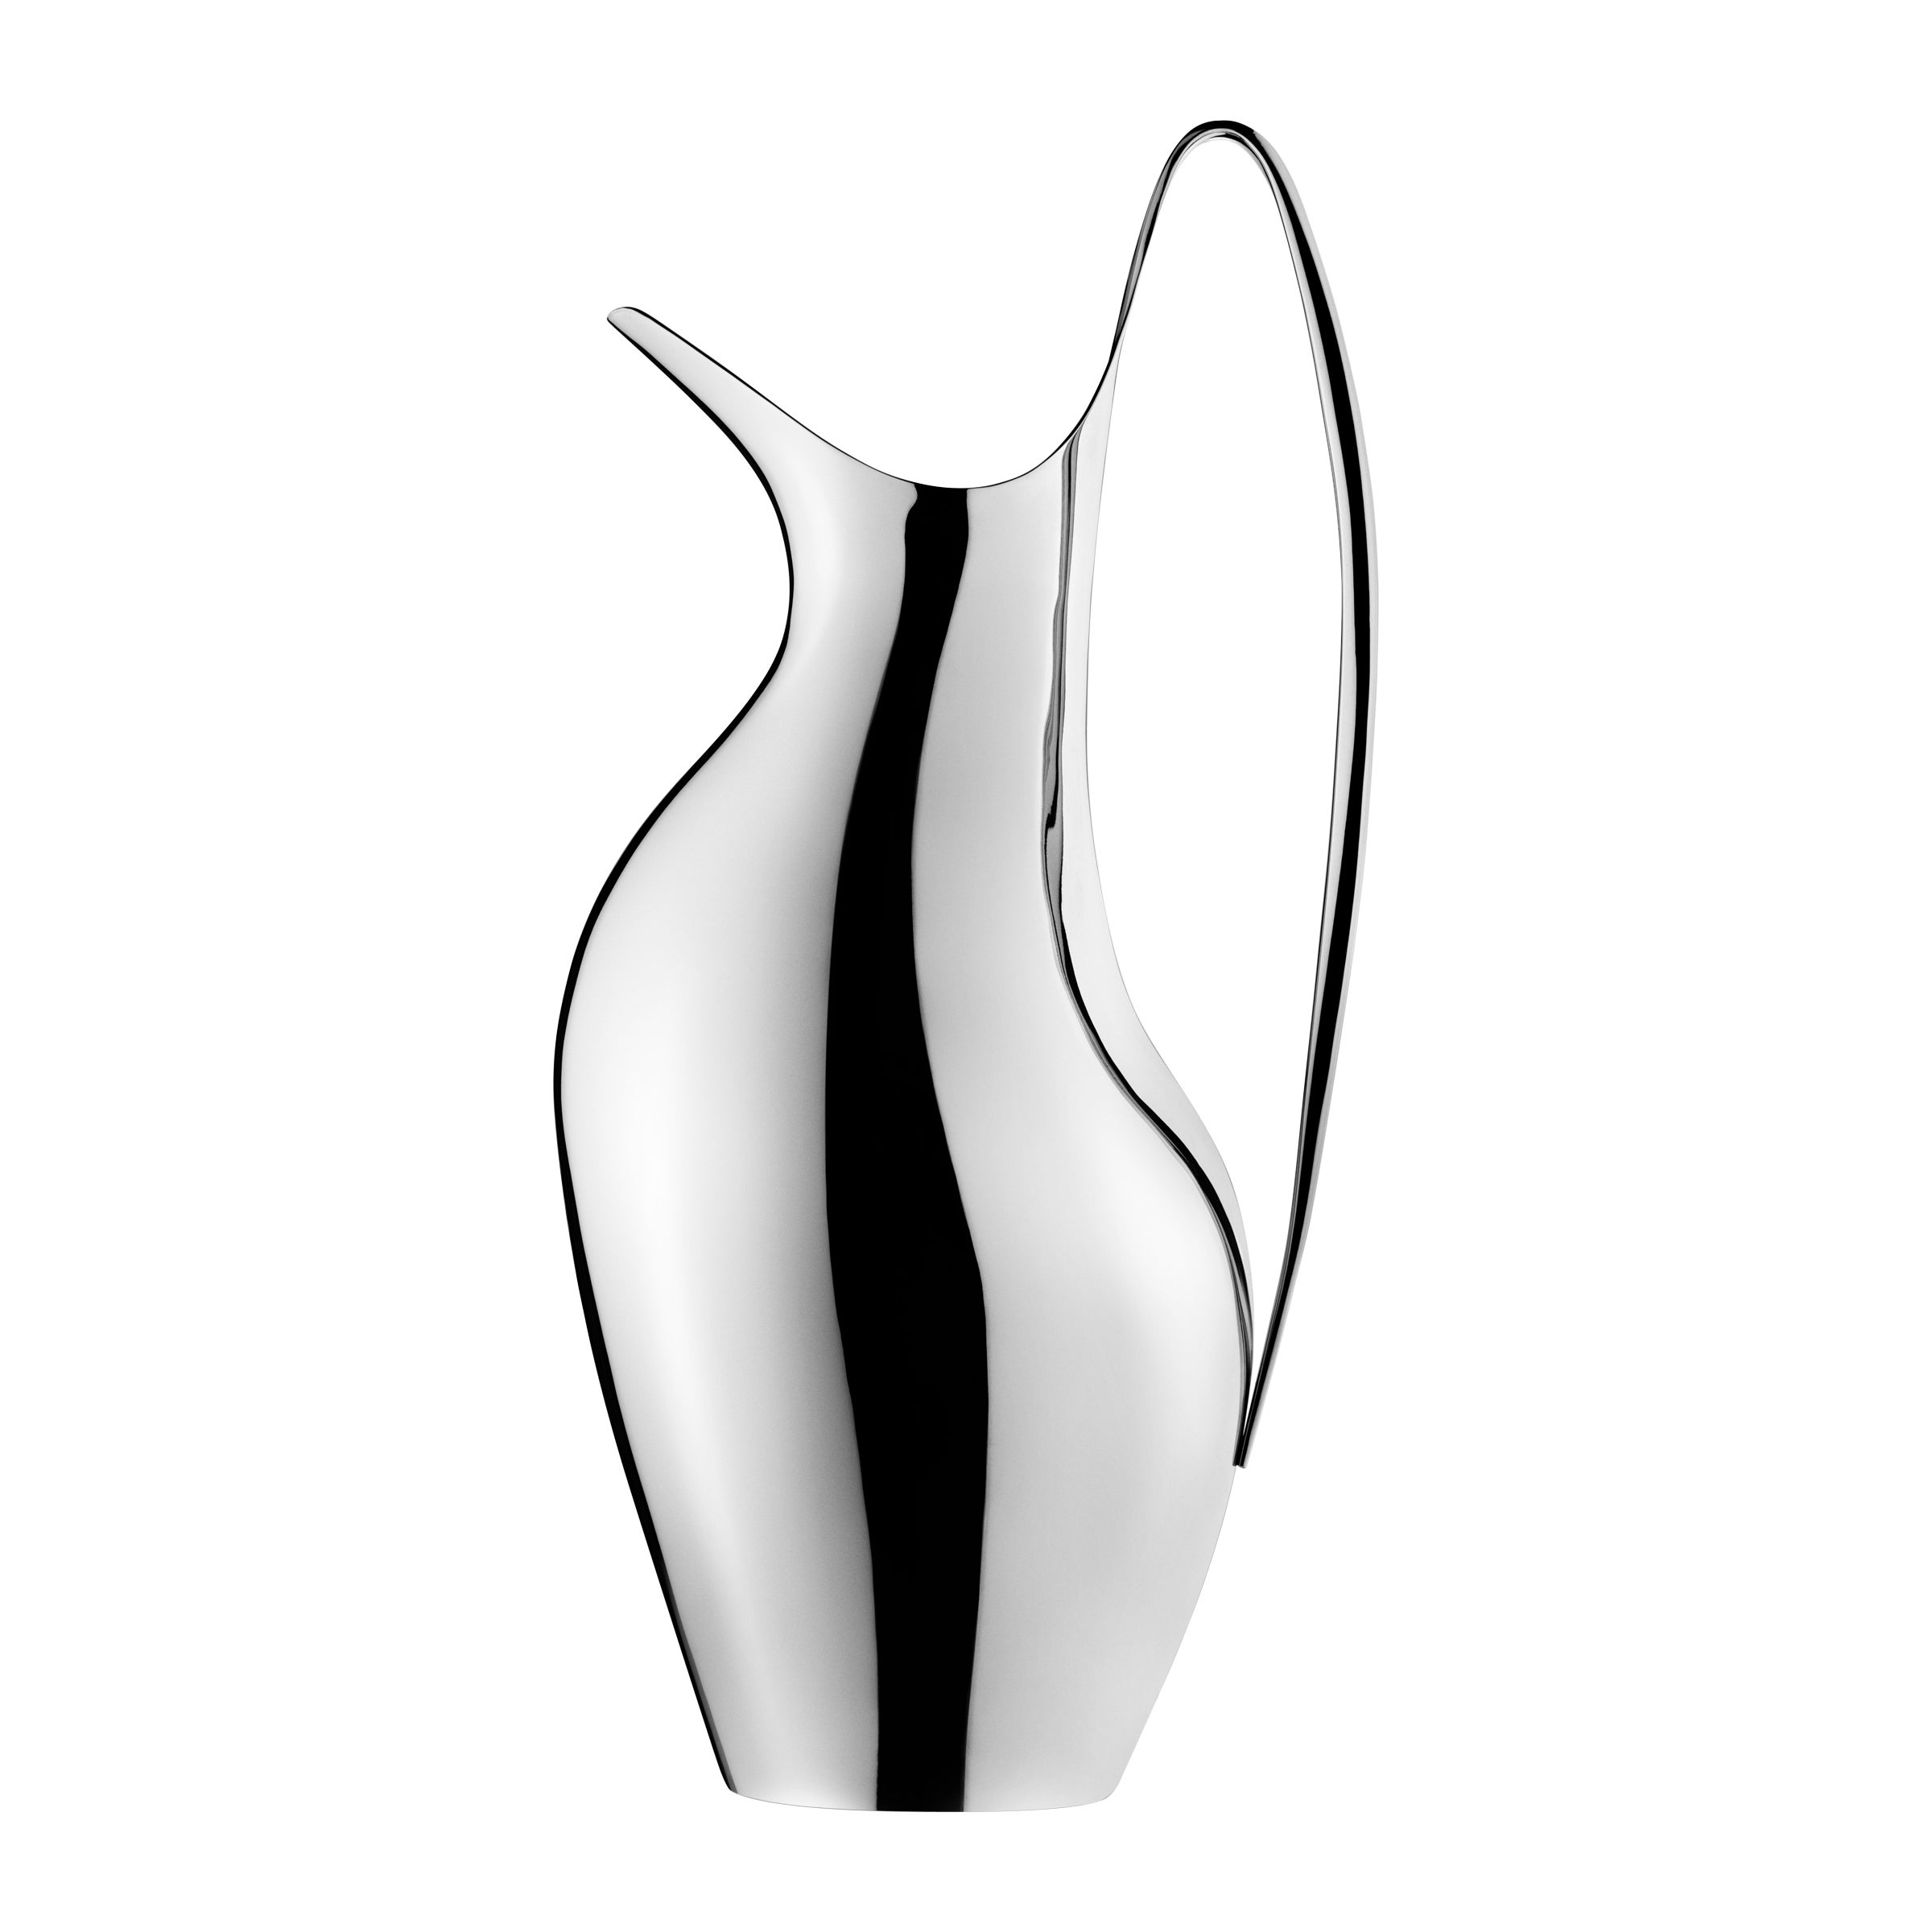 Georg Jensen HK Small Pitcher in Stainless Steel Mirror Finish by Henning Koppel